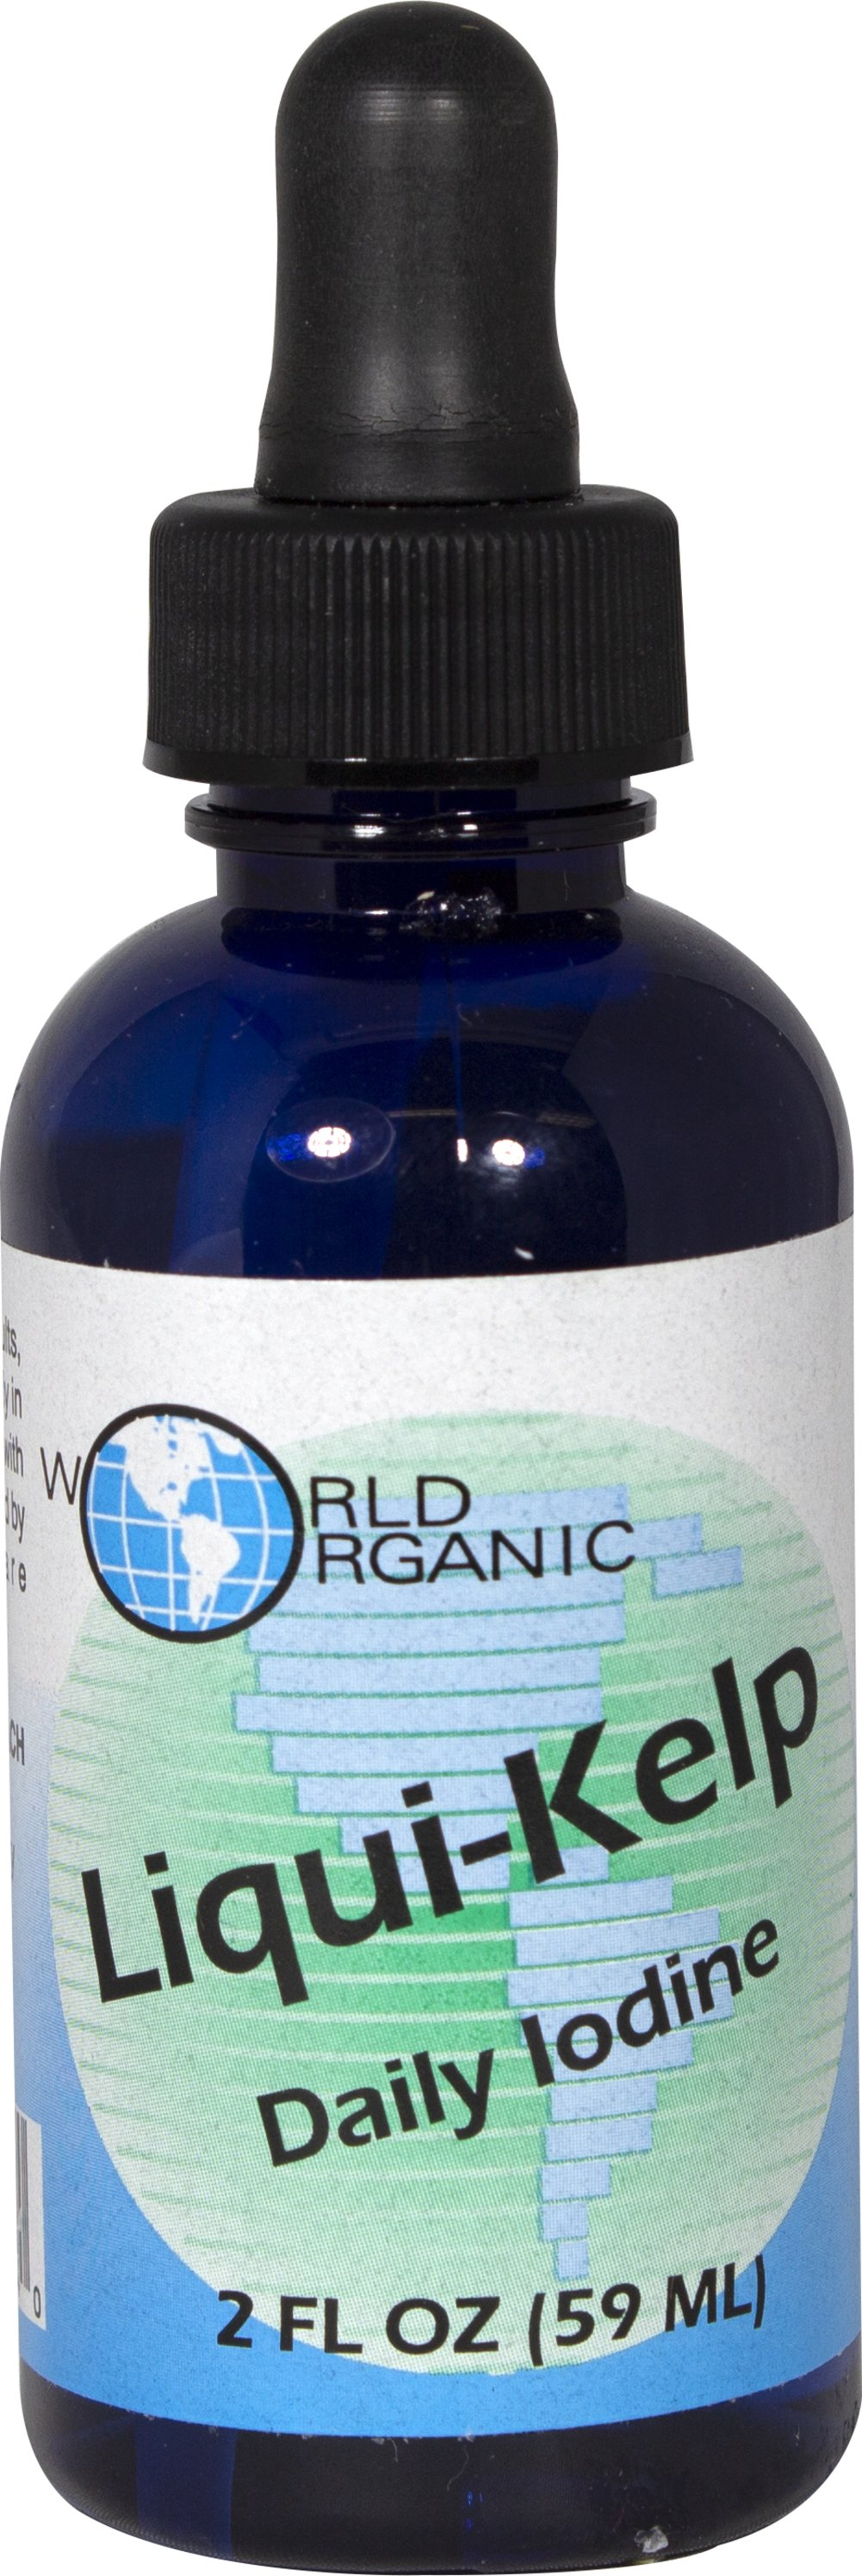 Liquid Kelp <p><strong>From the Manufacturer's Label: </strong></p>Source of essential iodine. Kelp provides iodine, which is one of the few minerals designated as essential. Liquid formula. Serving is 4 drops - 0.25ml. 2 fl oz Liquid 150 mcg $2.99